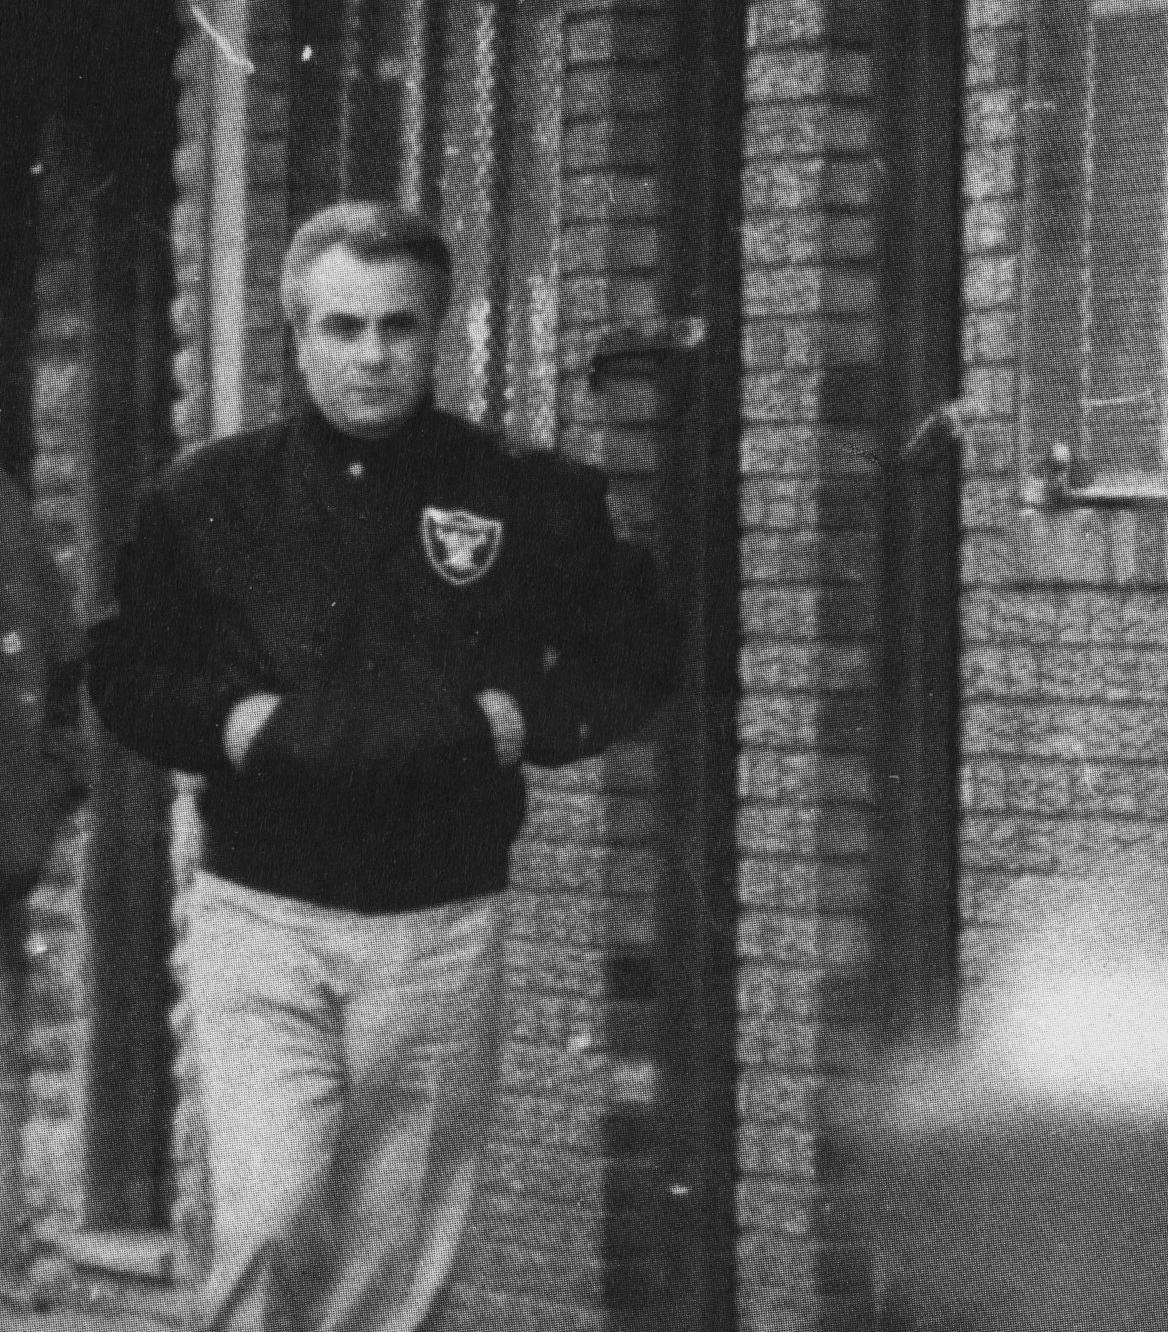 Surveillance photo of mobster John Gotti, walking down a street in 1980s in New York City.